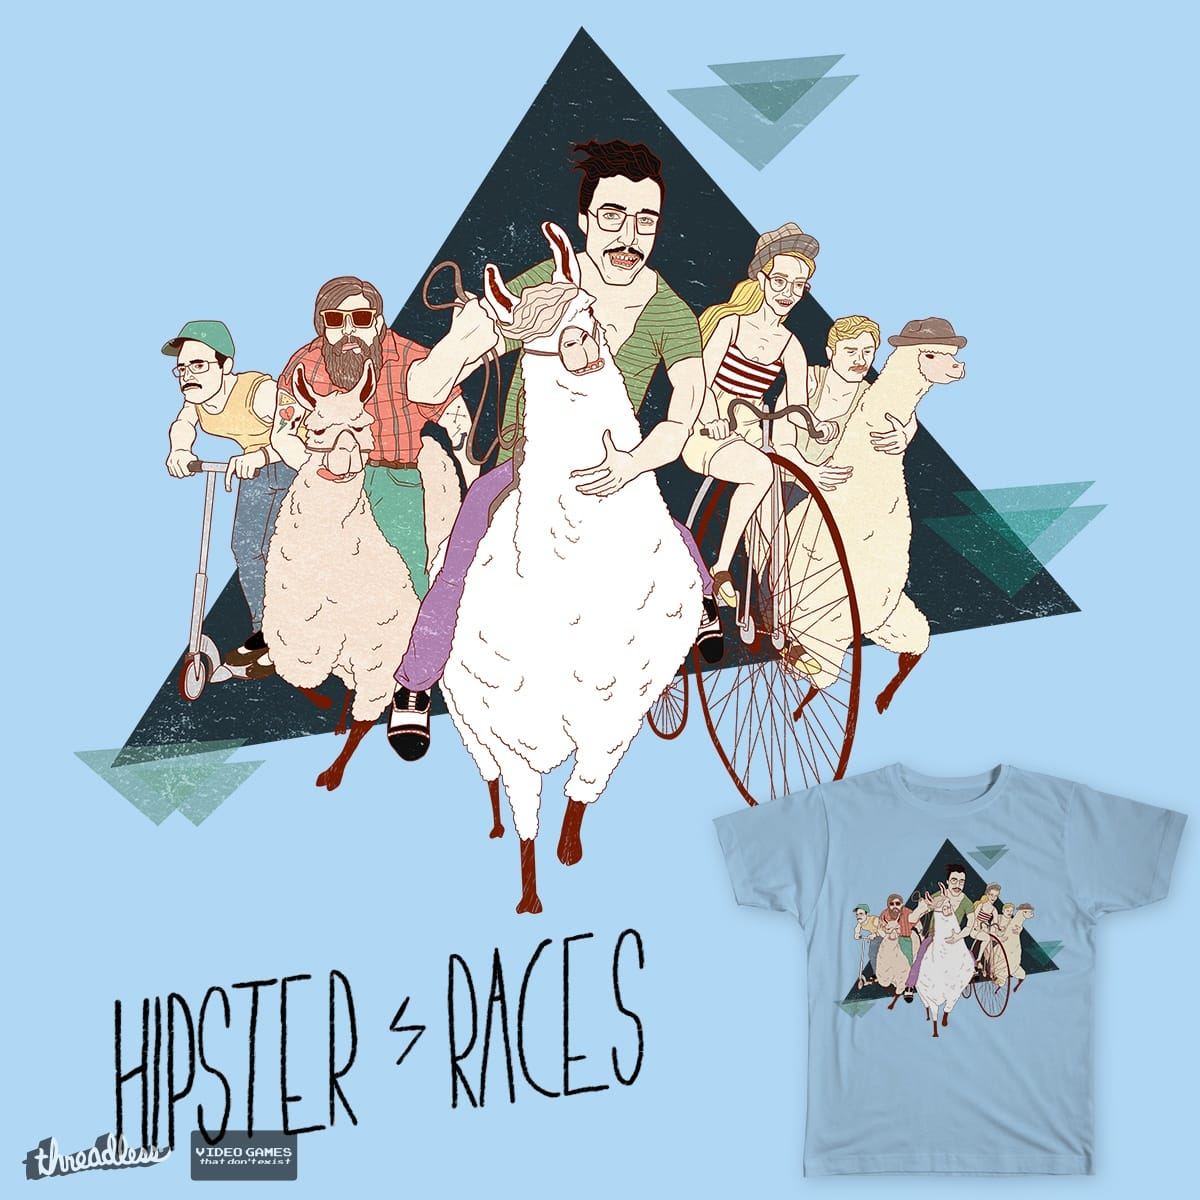 HIPSTER RACES by R.W. on Threadless